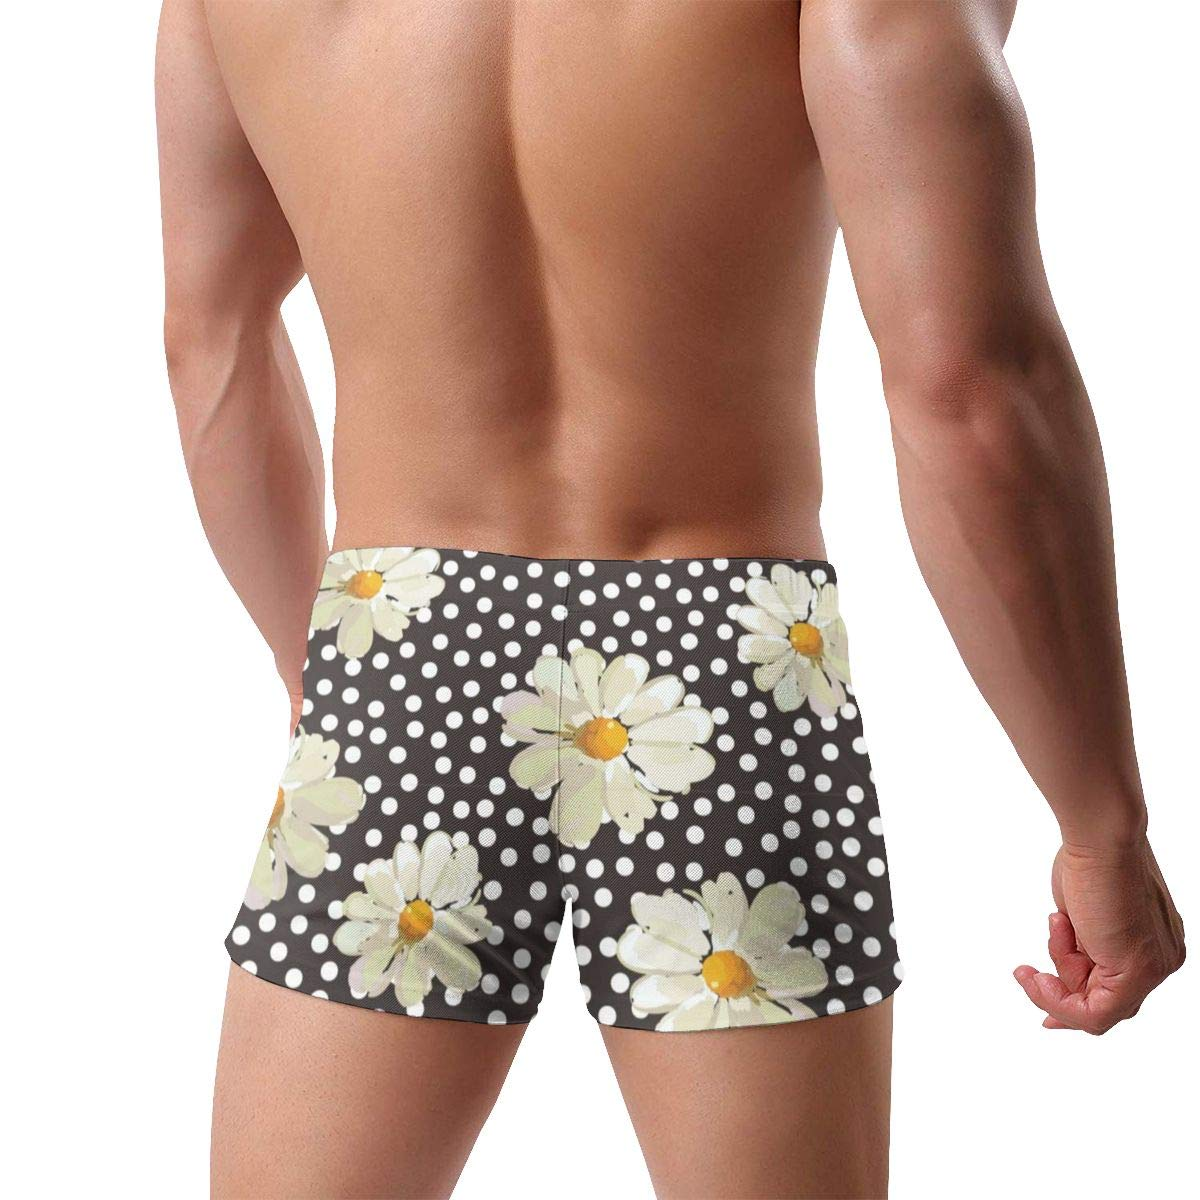 G66TCX Mens Boxer Swimwear Retro Summer Quick Dry Surf Boxer Trunks Shorts Swim Underwear